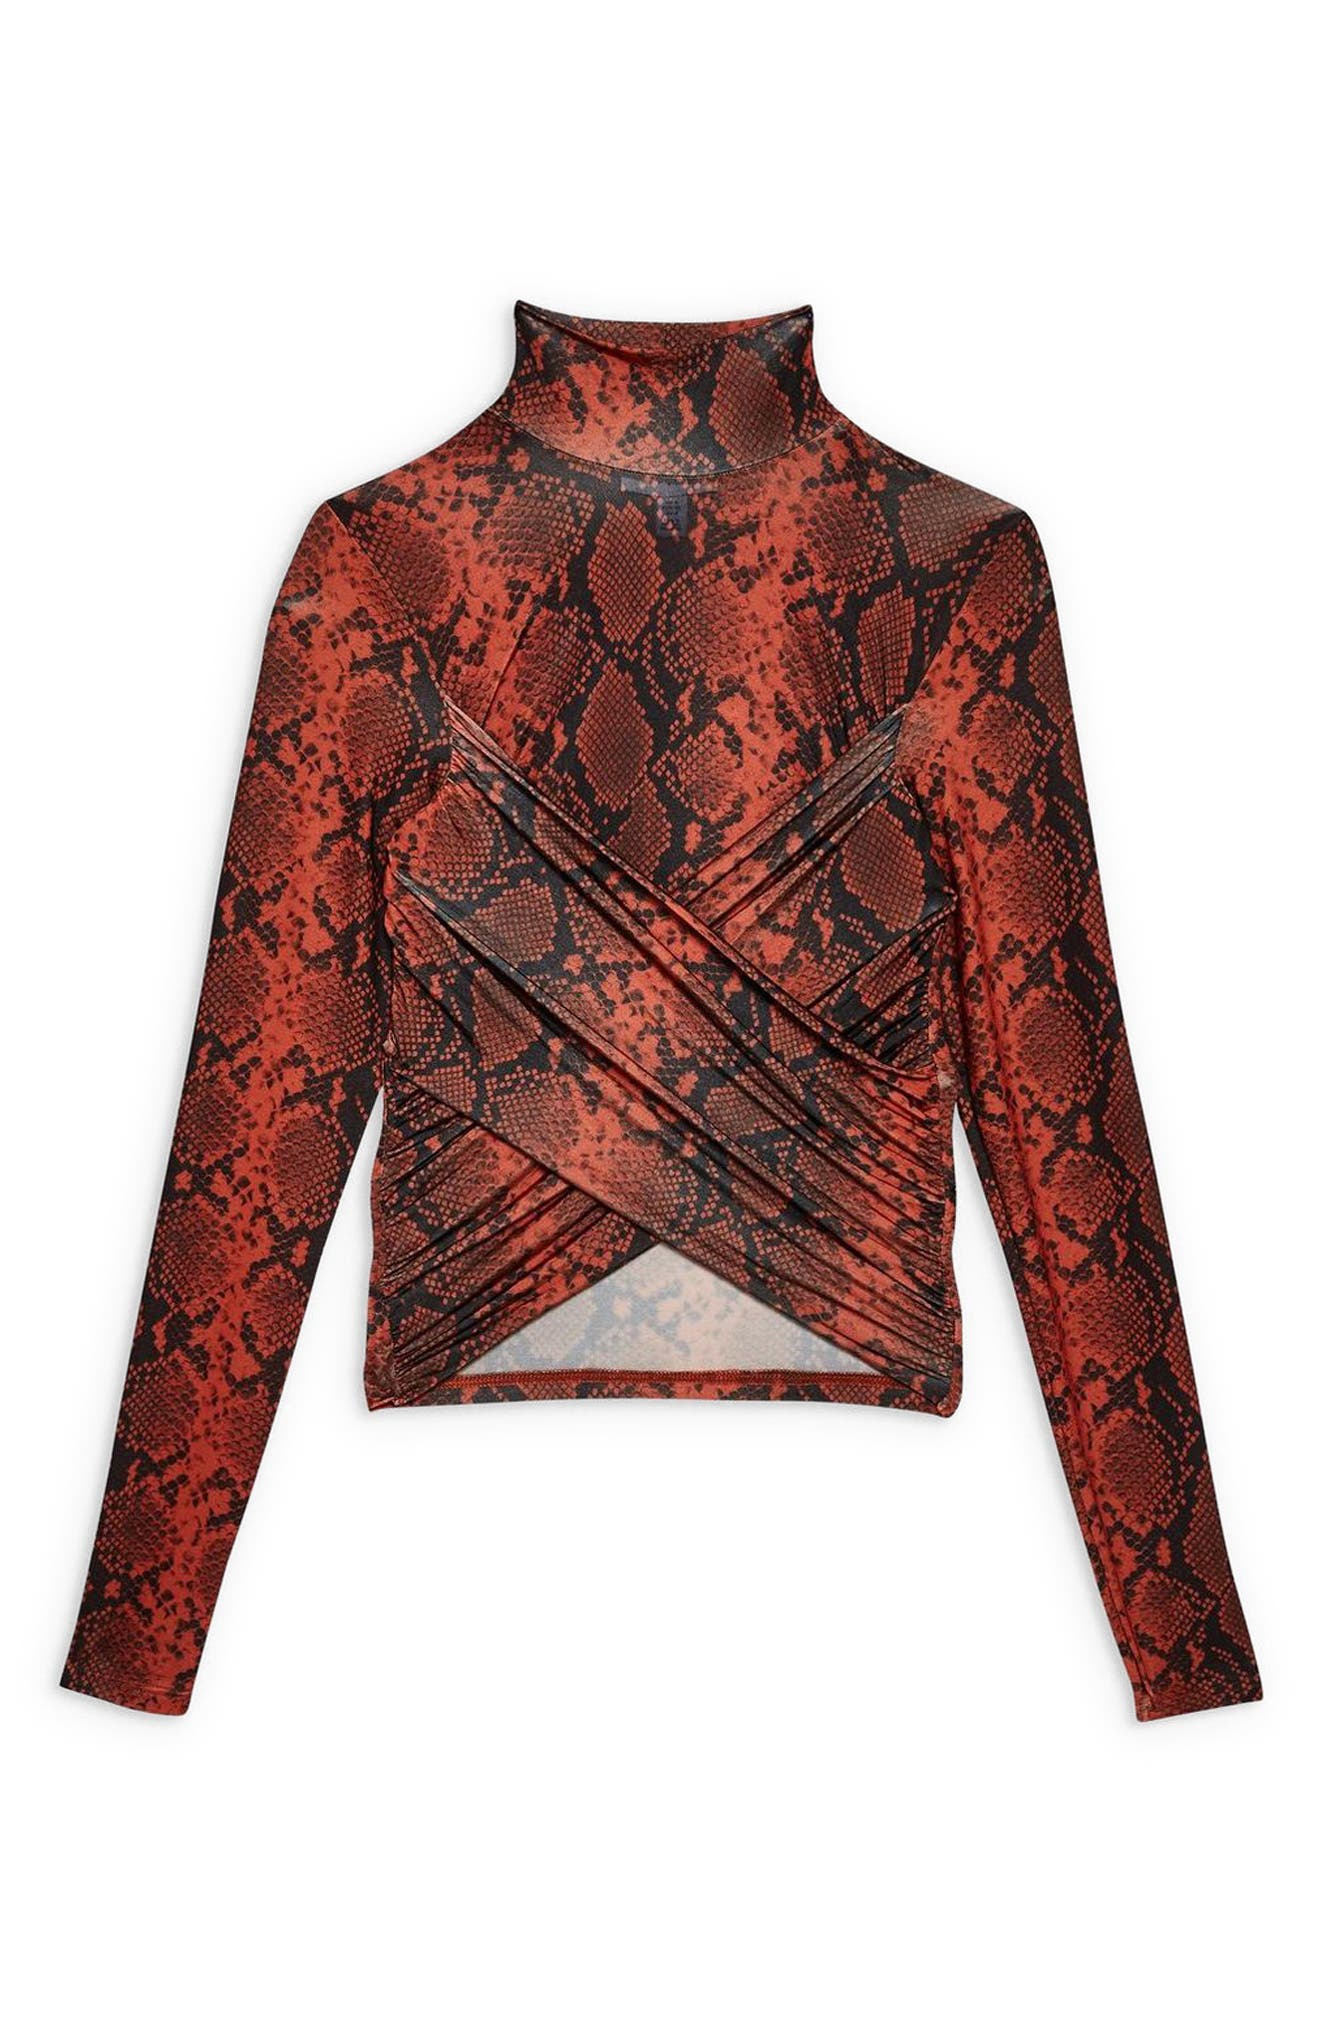 TOPSHOP, Snake Wrap High Neck Top, Alternate thumbnail 4, color, RED MULTI